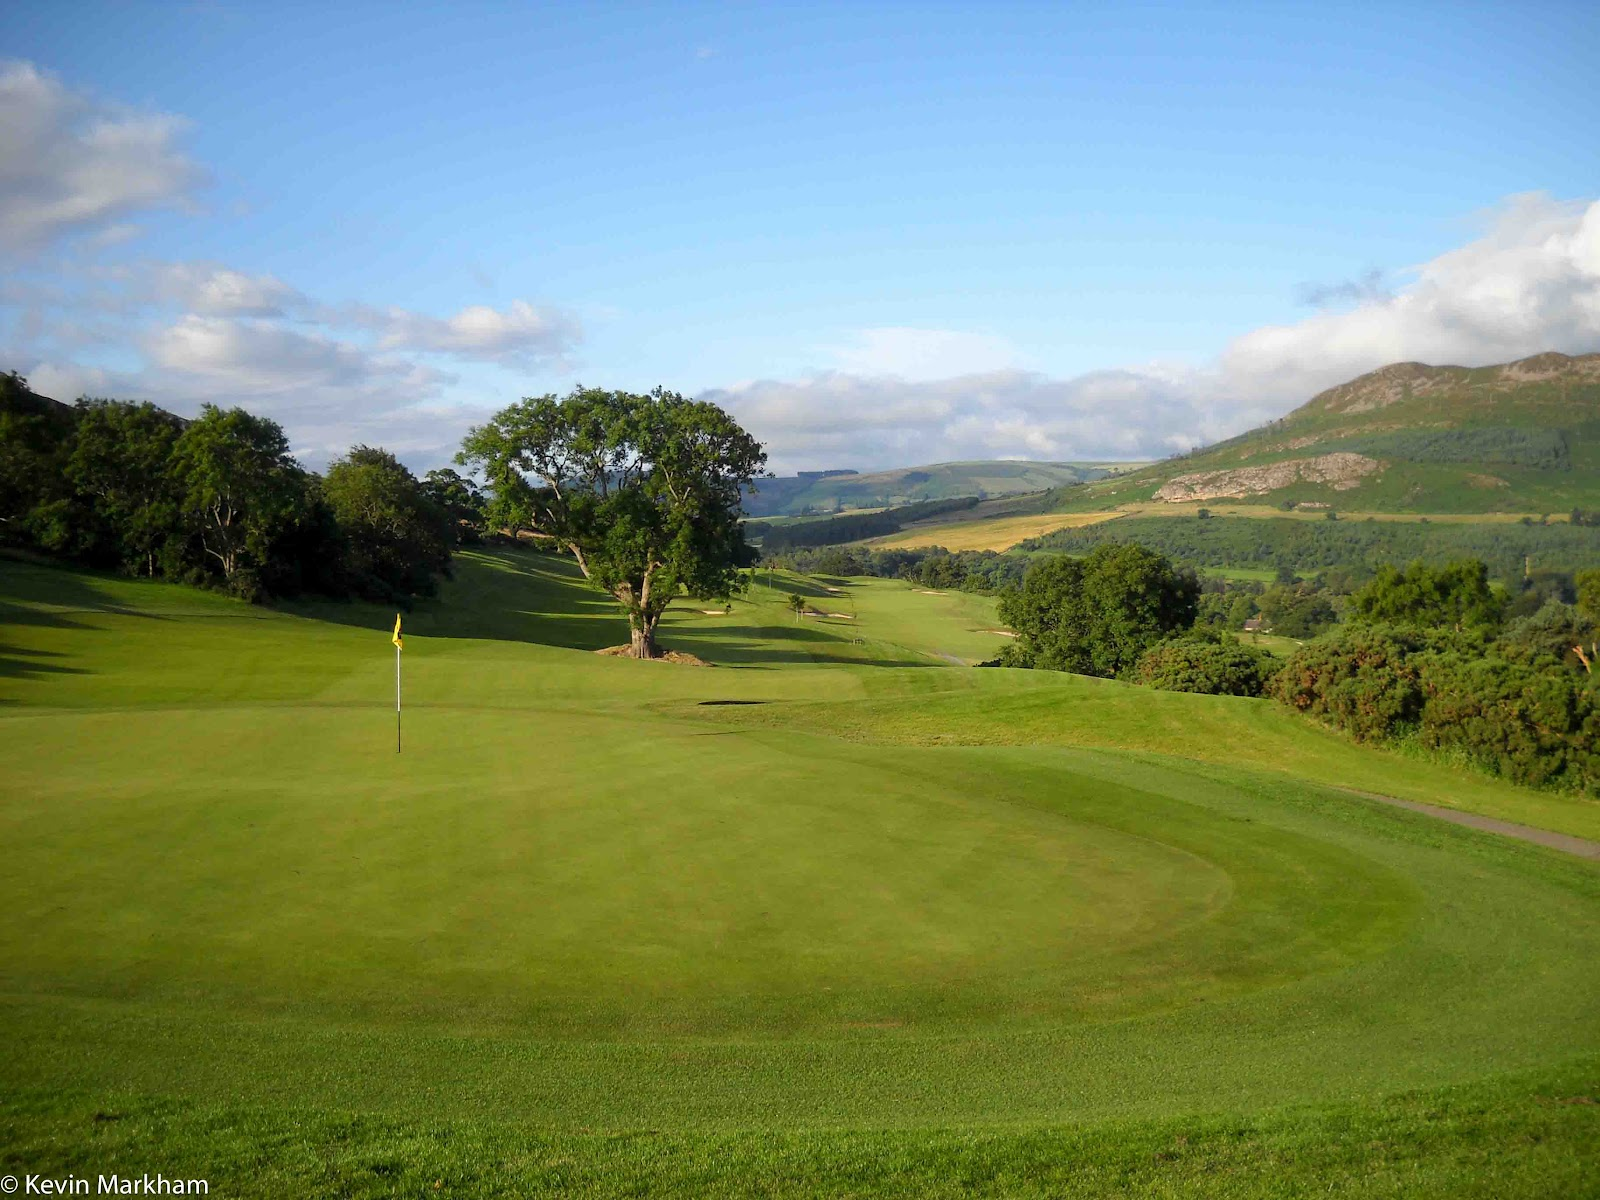 hooked s golf courses bray gets a splash of sunshine but move they did although the old course down near superquinn is still being played in 2003 and an impressive job des smyth made of it